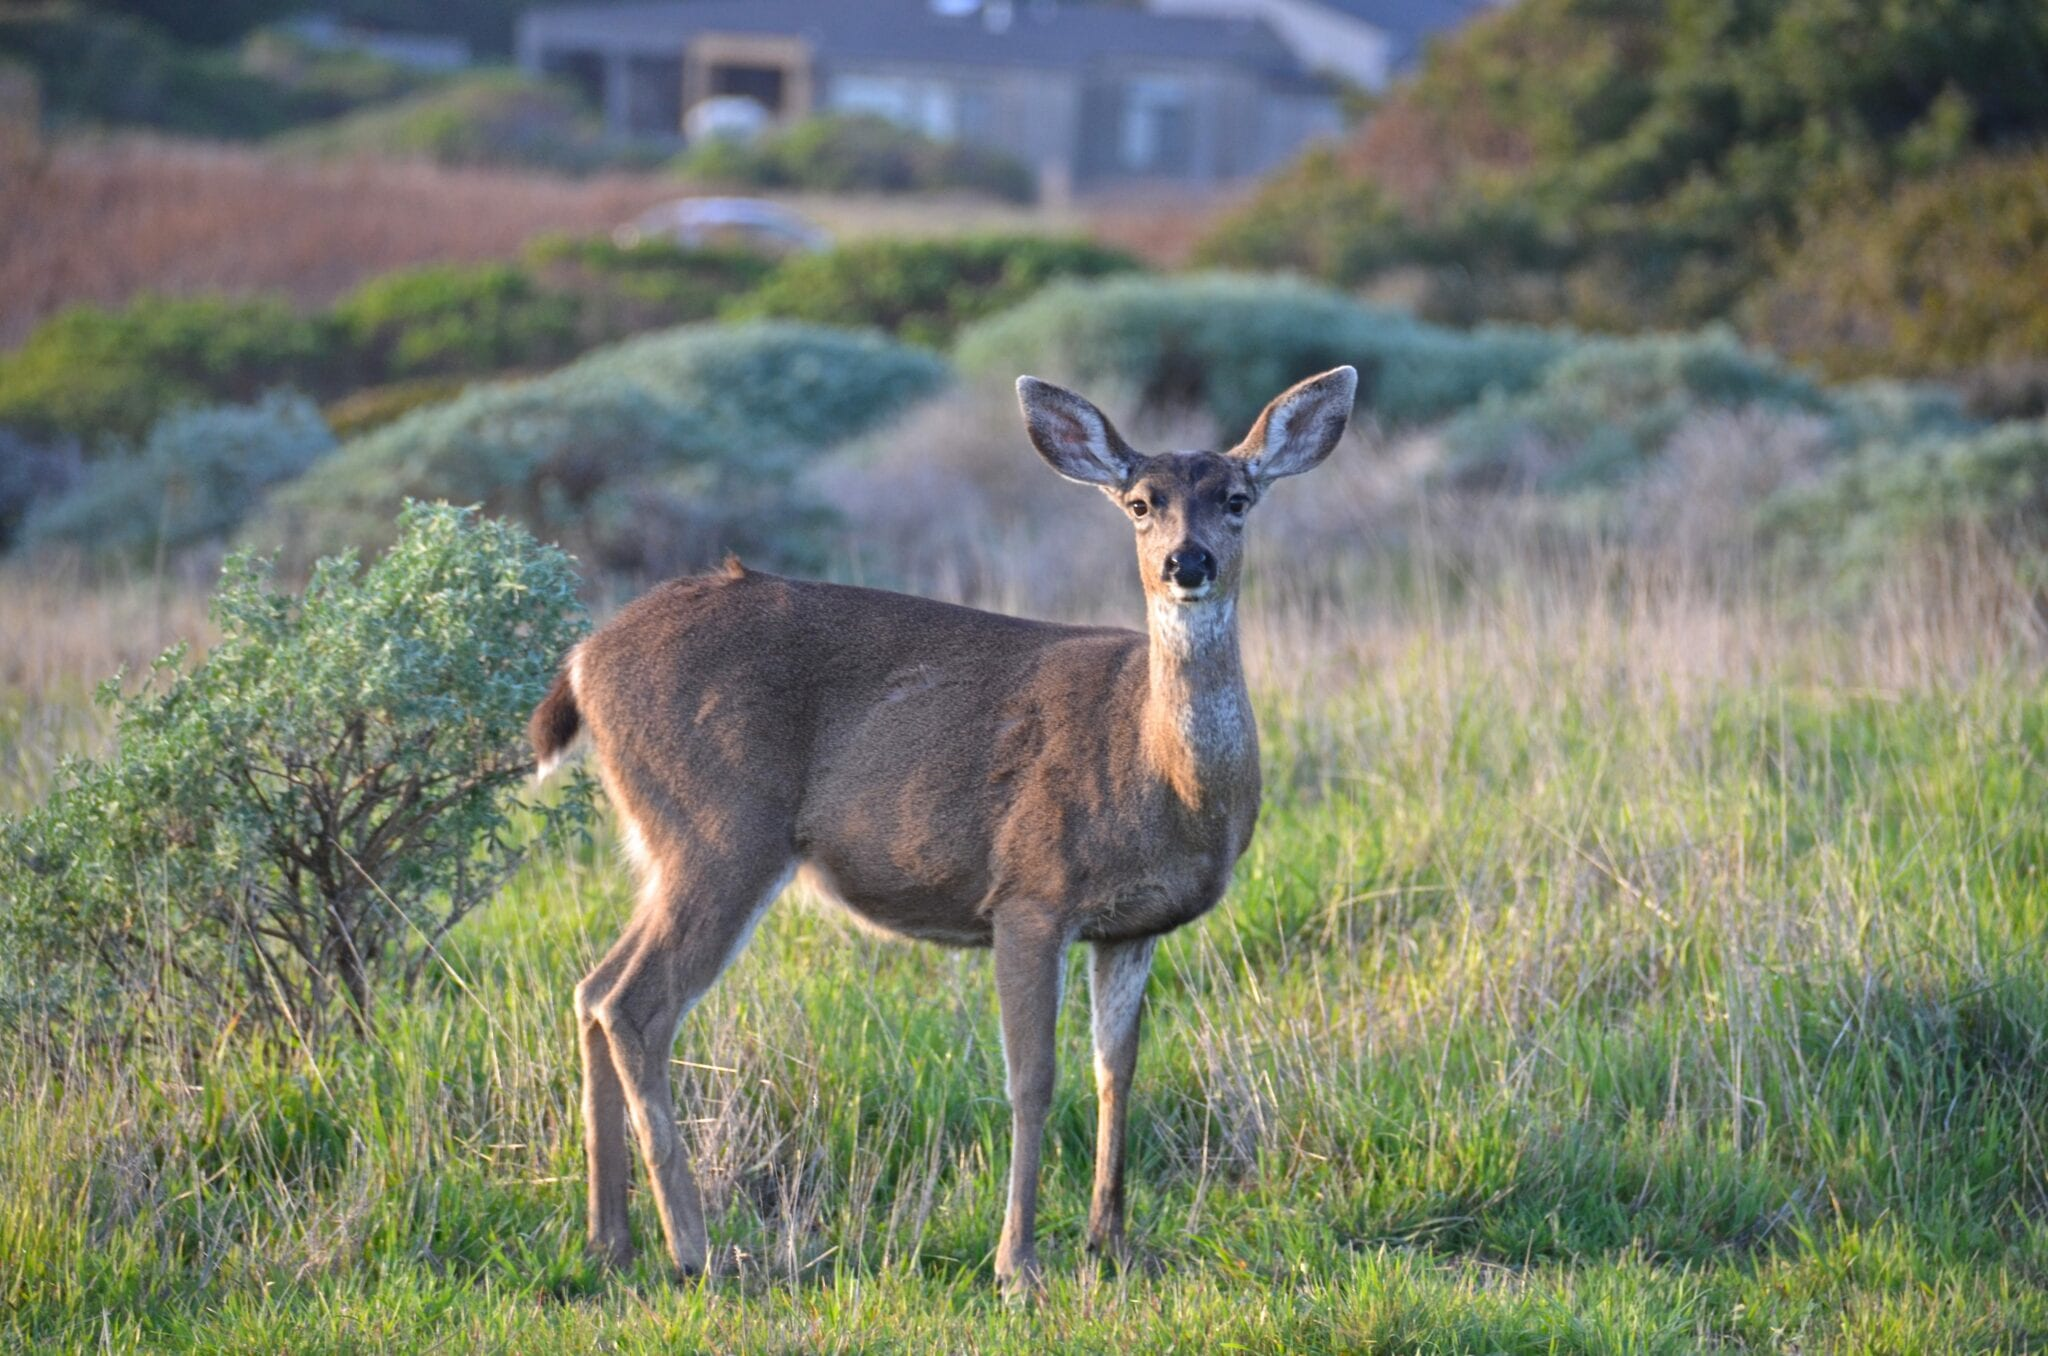 Sea Ranch Cherished Memories,Sea Ranch Oceanfront, Abalone Bay, deer